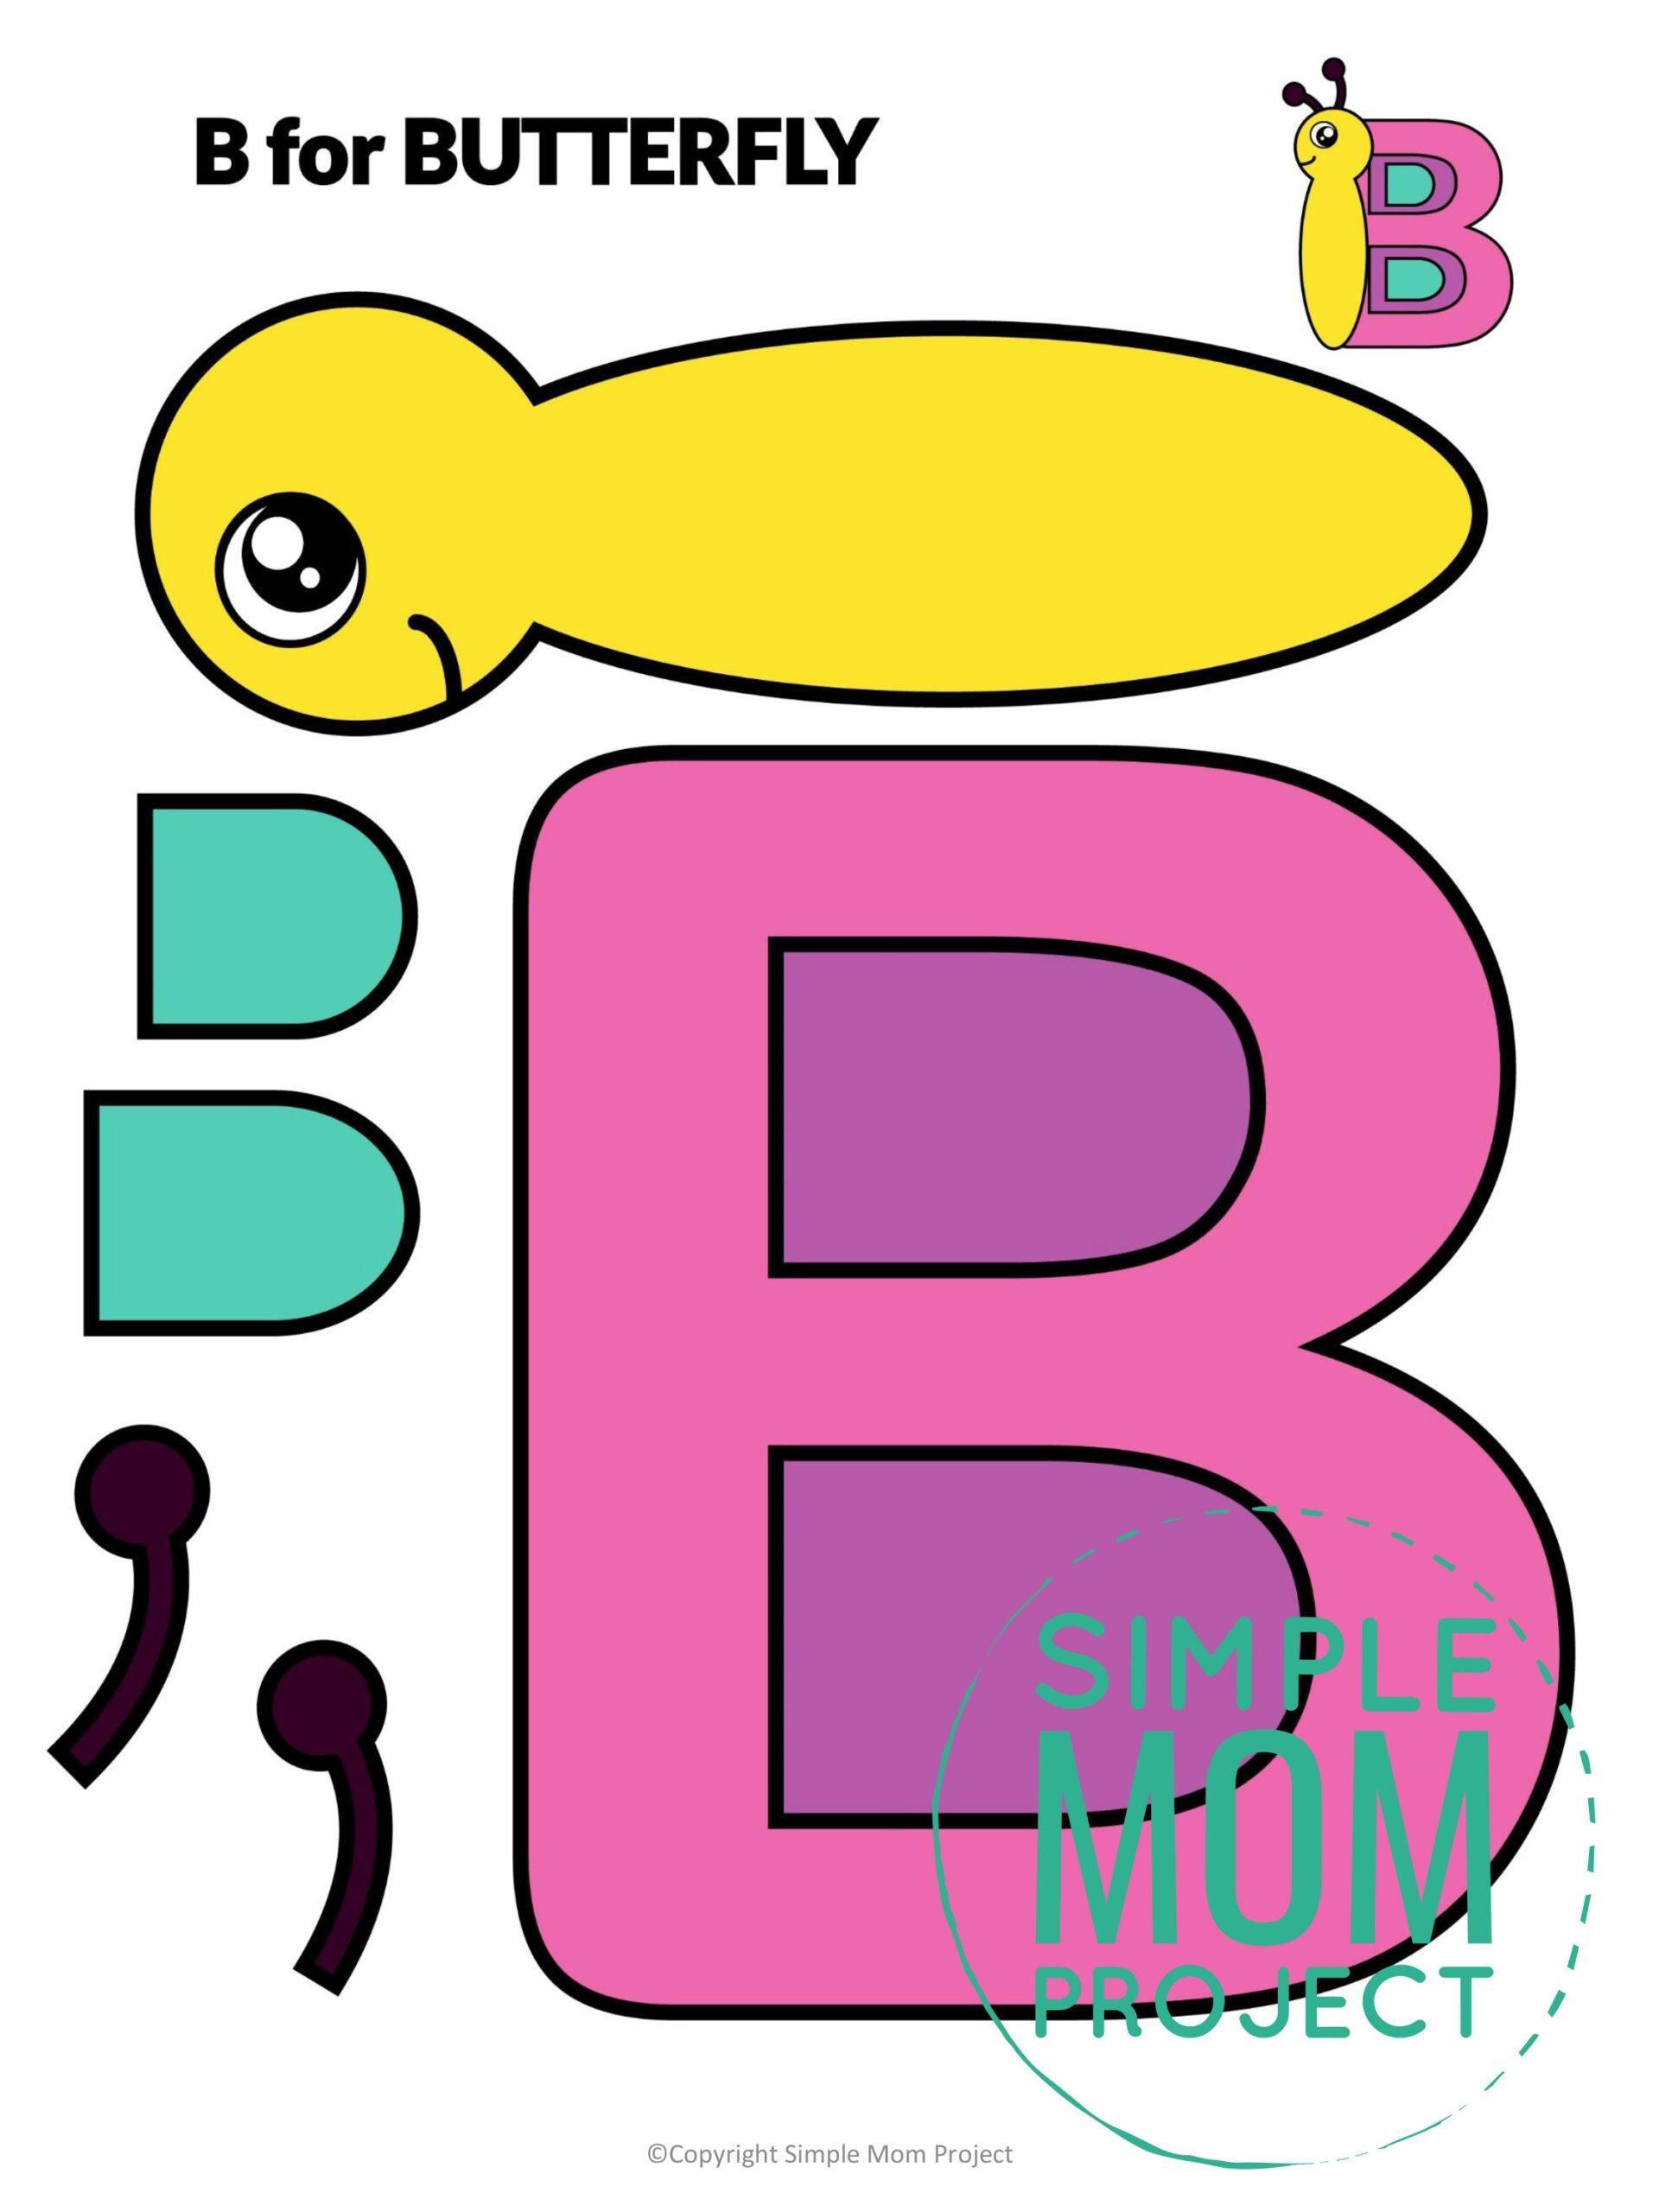 B is for Butterfly Free Printable Craft Butterfly Letter B Craft for Kids, preschoolers, toddlers and kindergartner